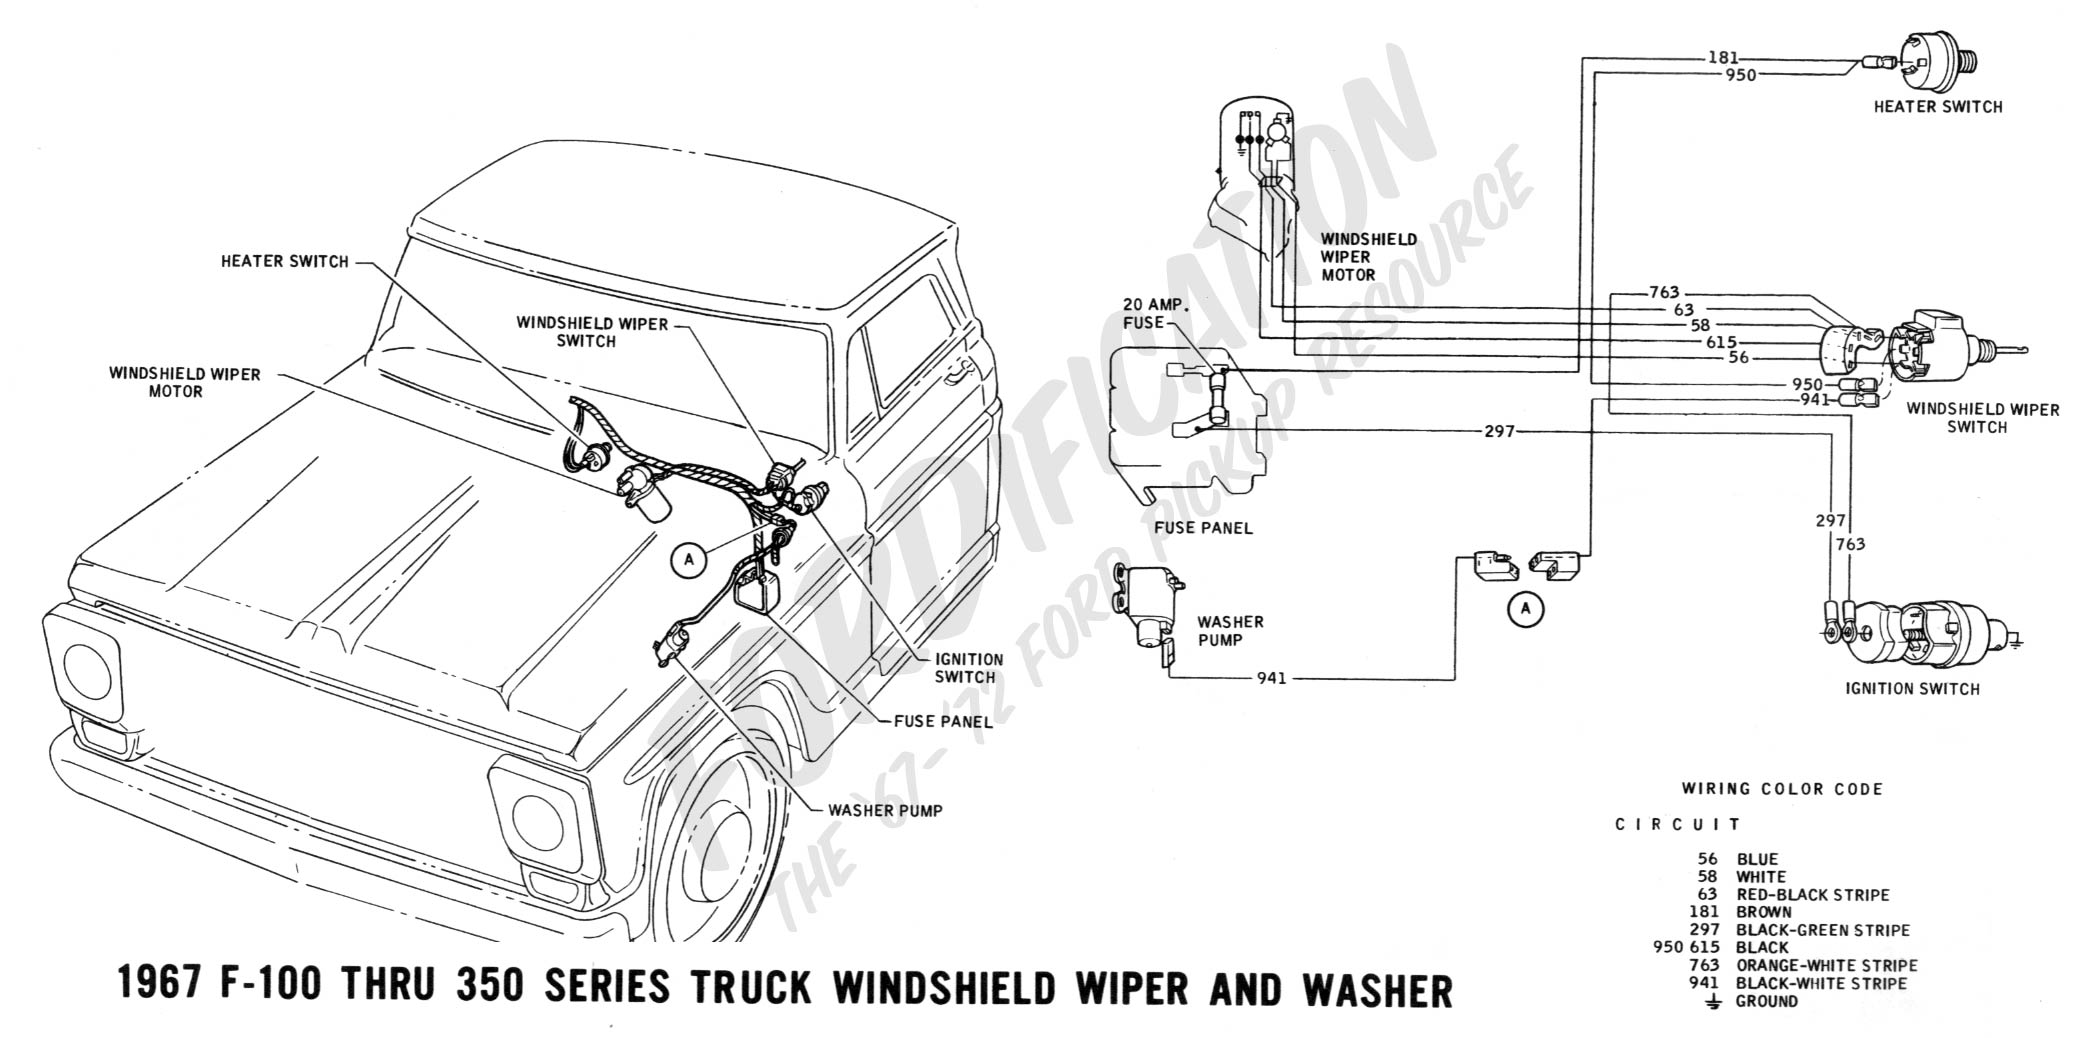 Ford Truck Technical Drawings and Schematics - Section H ... on wwf wiper motor diagram, 2005 bobcat s185 windshield wioer motor diagram, wiper wiring hi-low, ford wiper motor diagram, circuit diagram, briggs and stratton electrical diagram, wiper motor cover, wiper motor toyota, front bumper assembly diagram, solenoid switch diagram, wiper switch diagram, wiper motor cable, gm wiper motor diagram, wiper motor parts, vacuum wipers diagram, wiper washer motor, wiper motor wire, wiper motor relay diagram, wiper motor power supply, windshield wiper motor diagram,